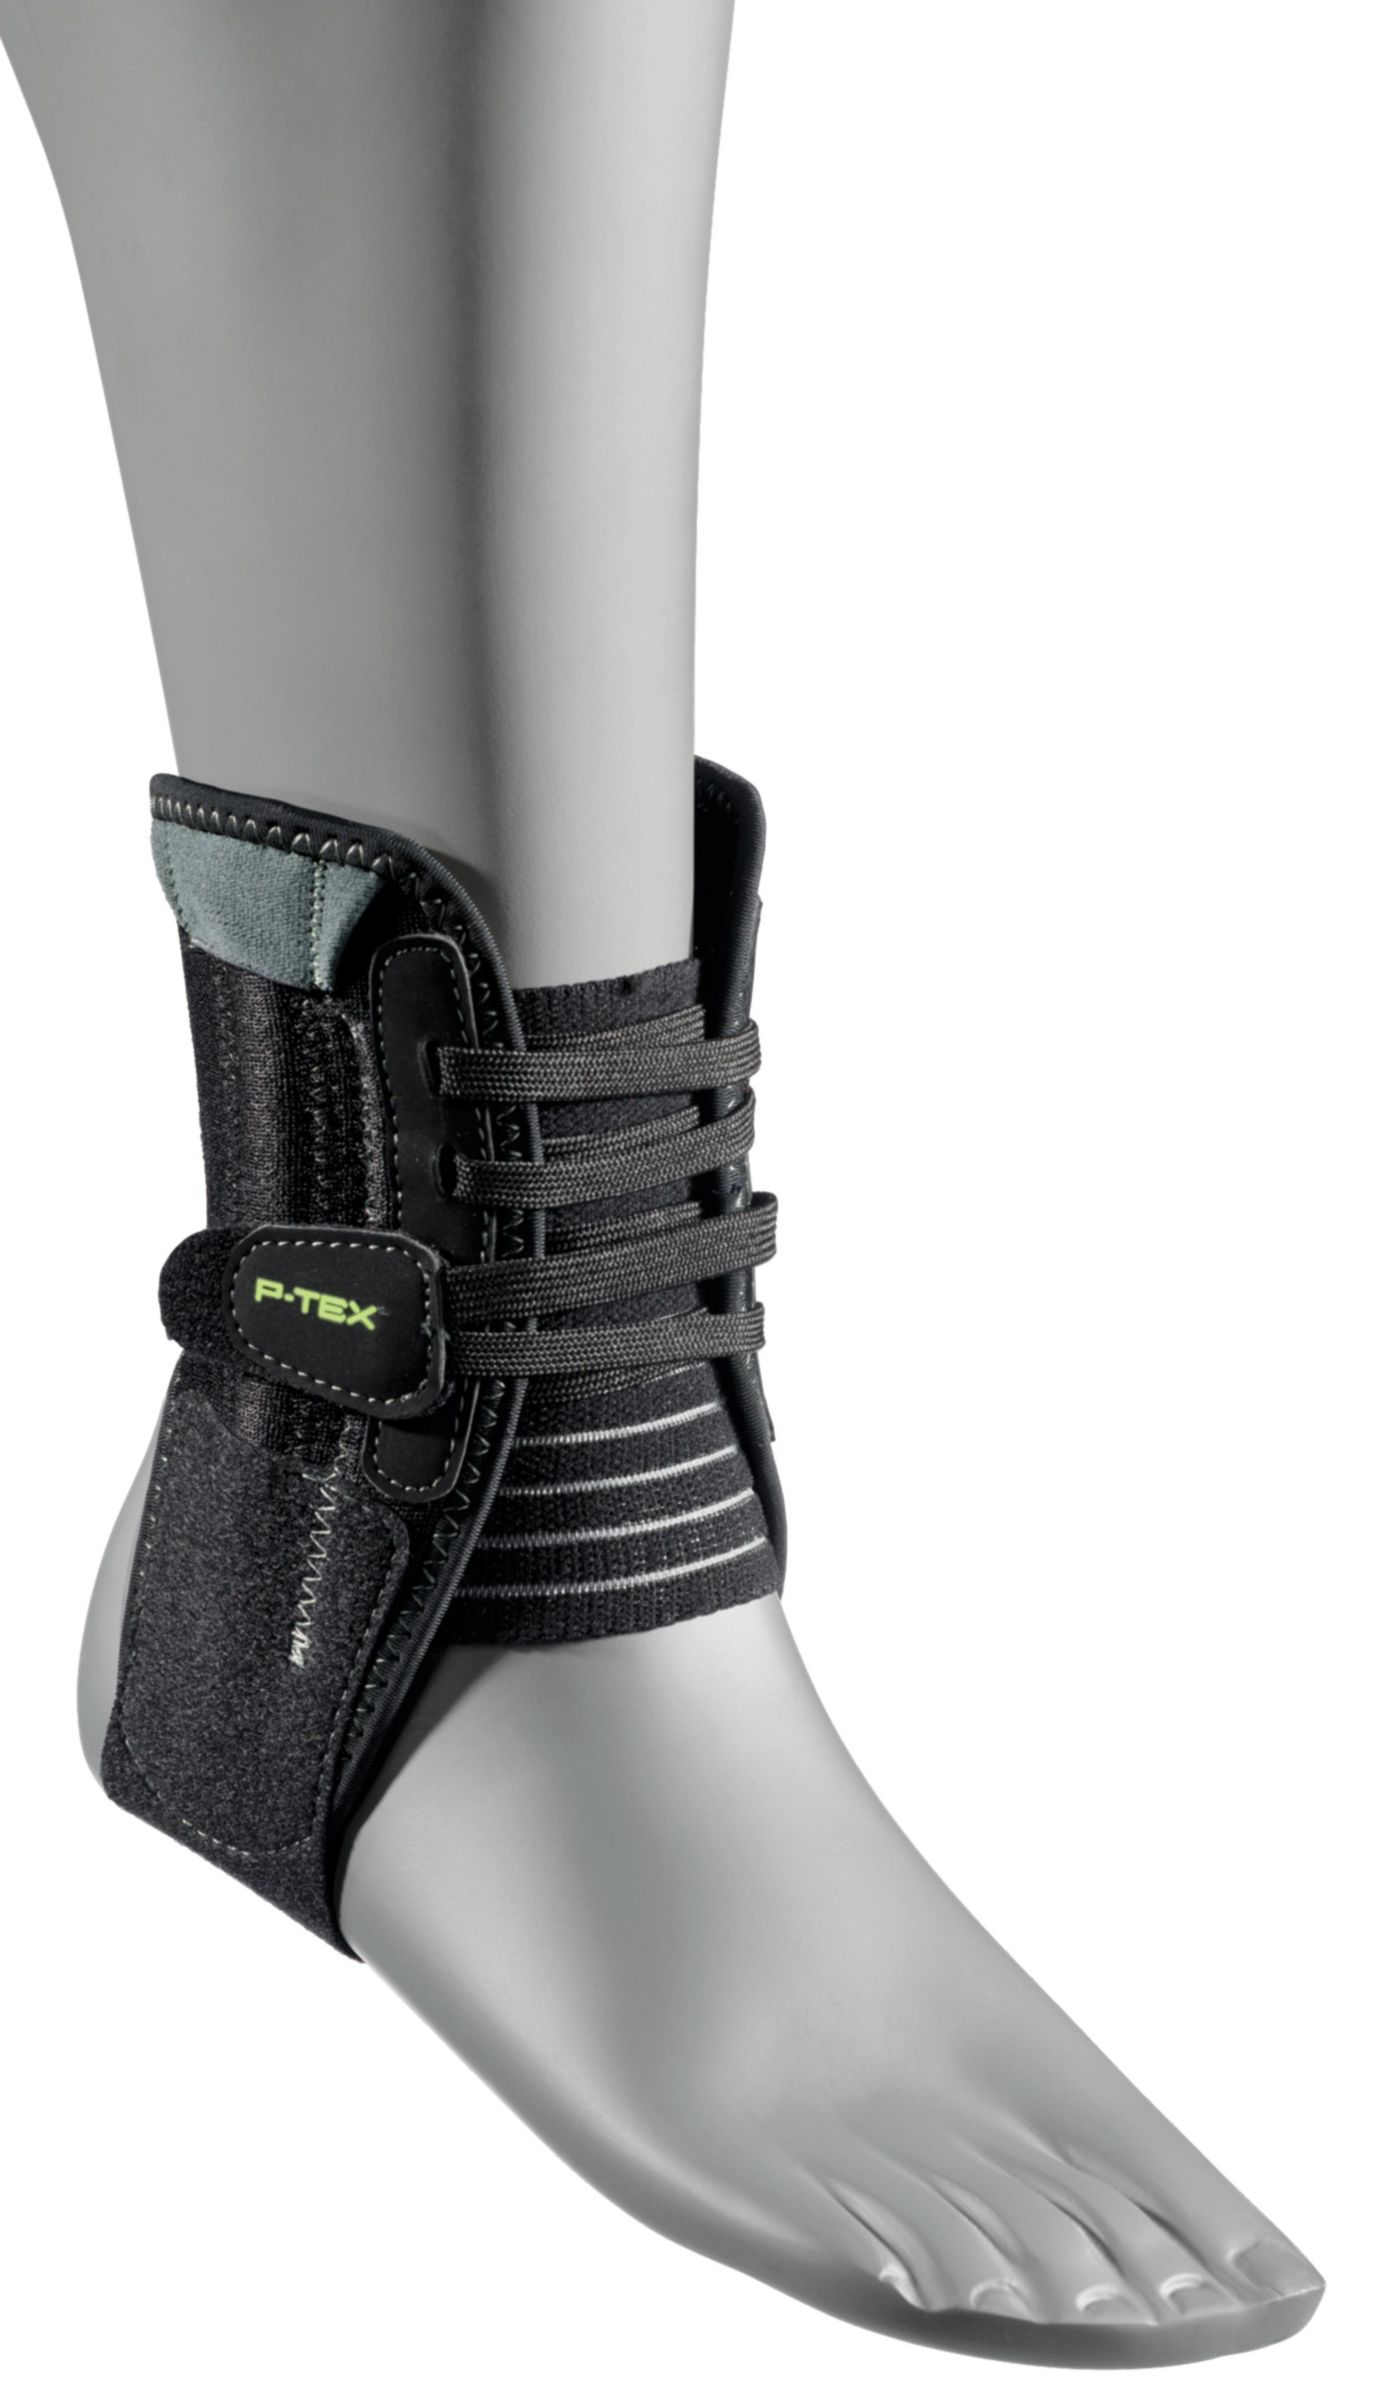 p tex ankle brace with stabilizers dick 39 s sporting goods